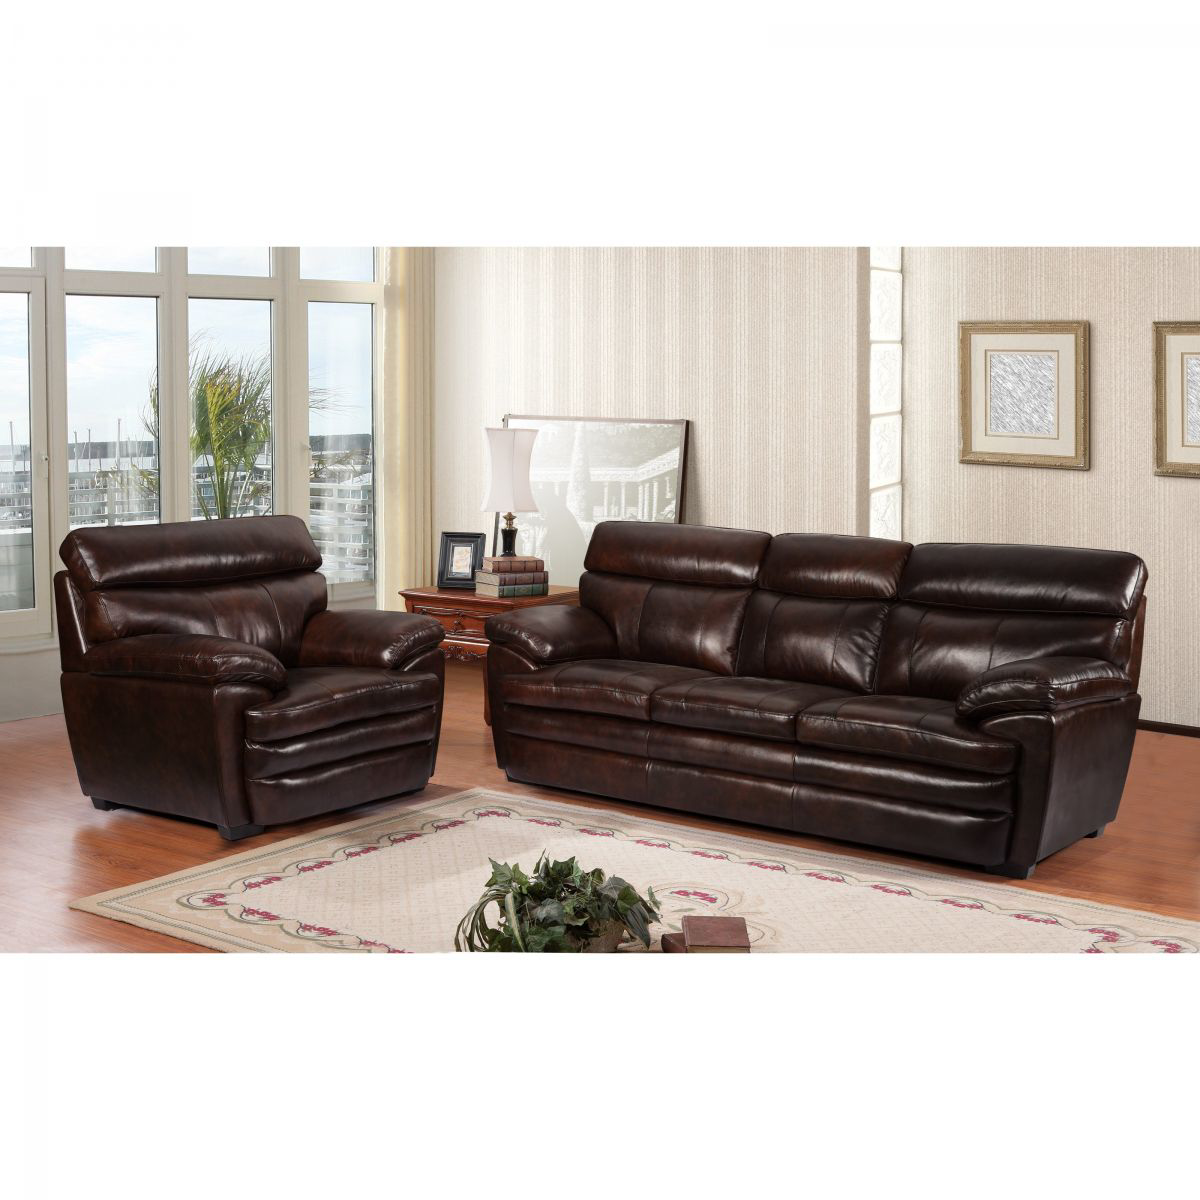 Picture of Shae Scottsdale Sofa